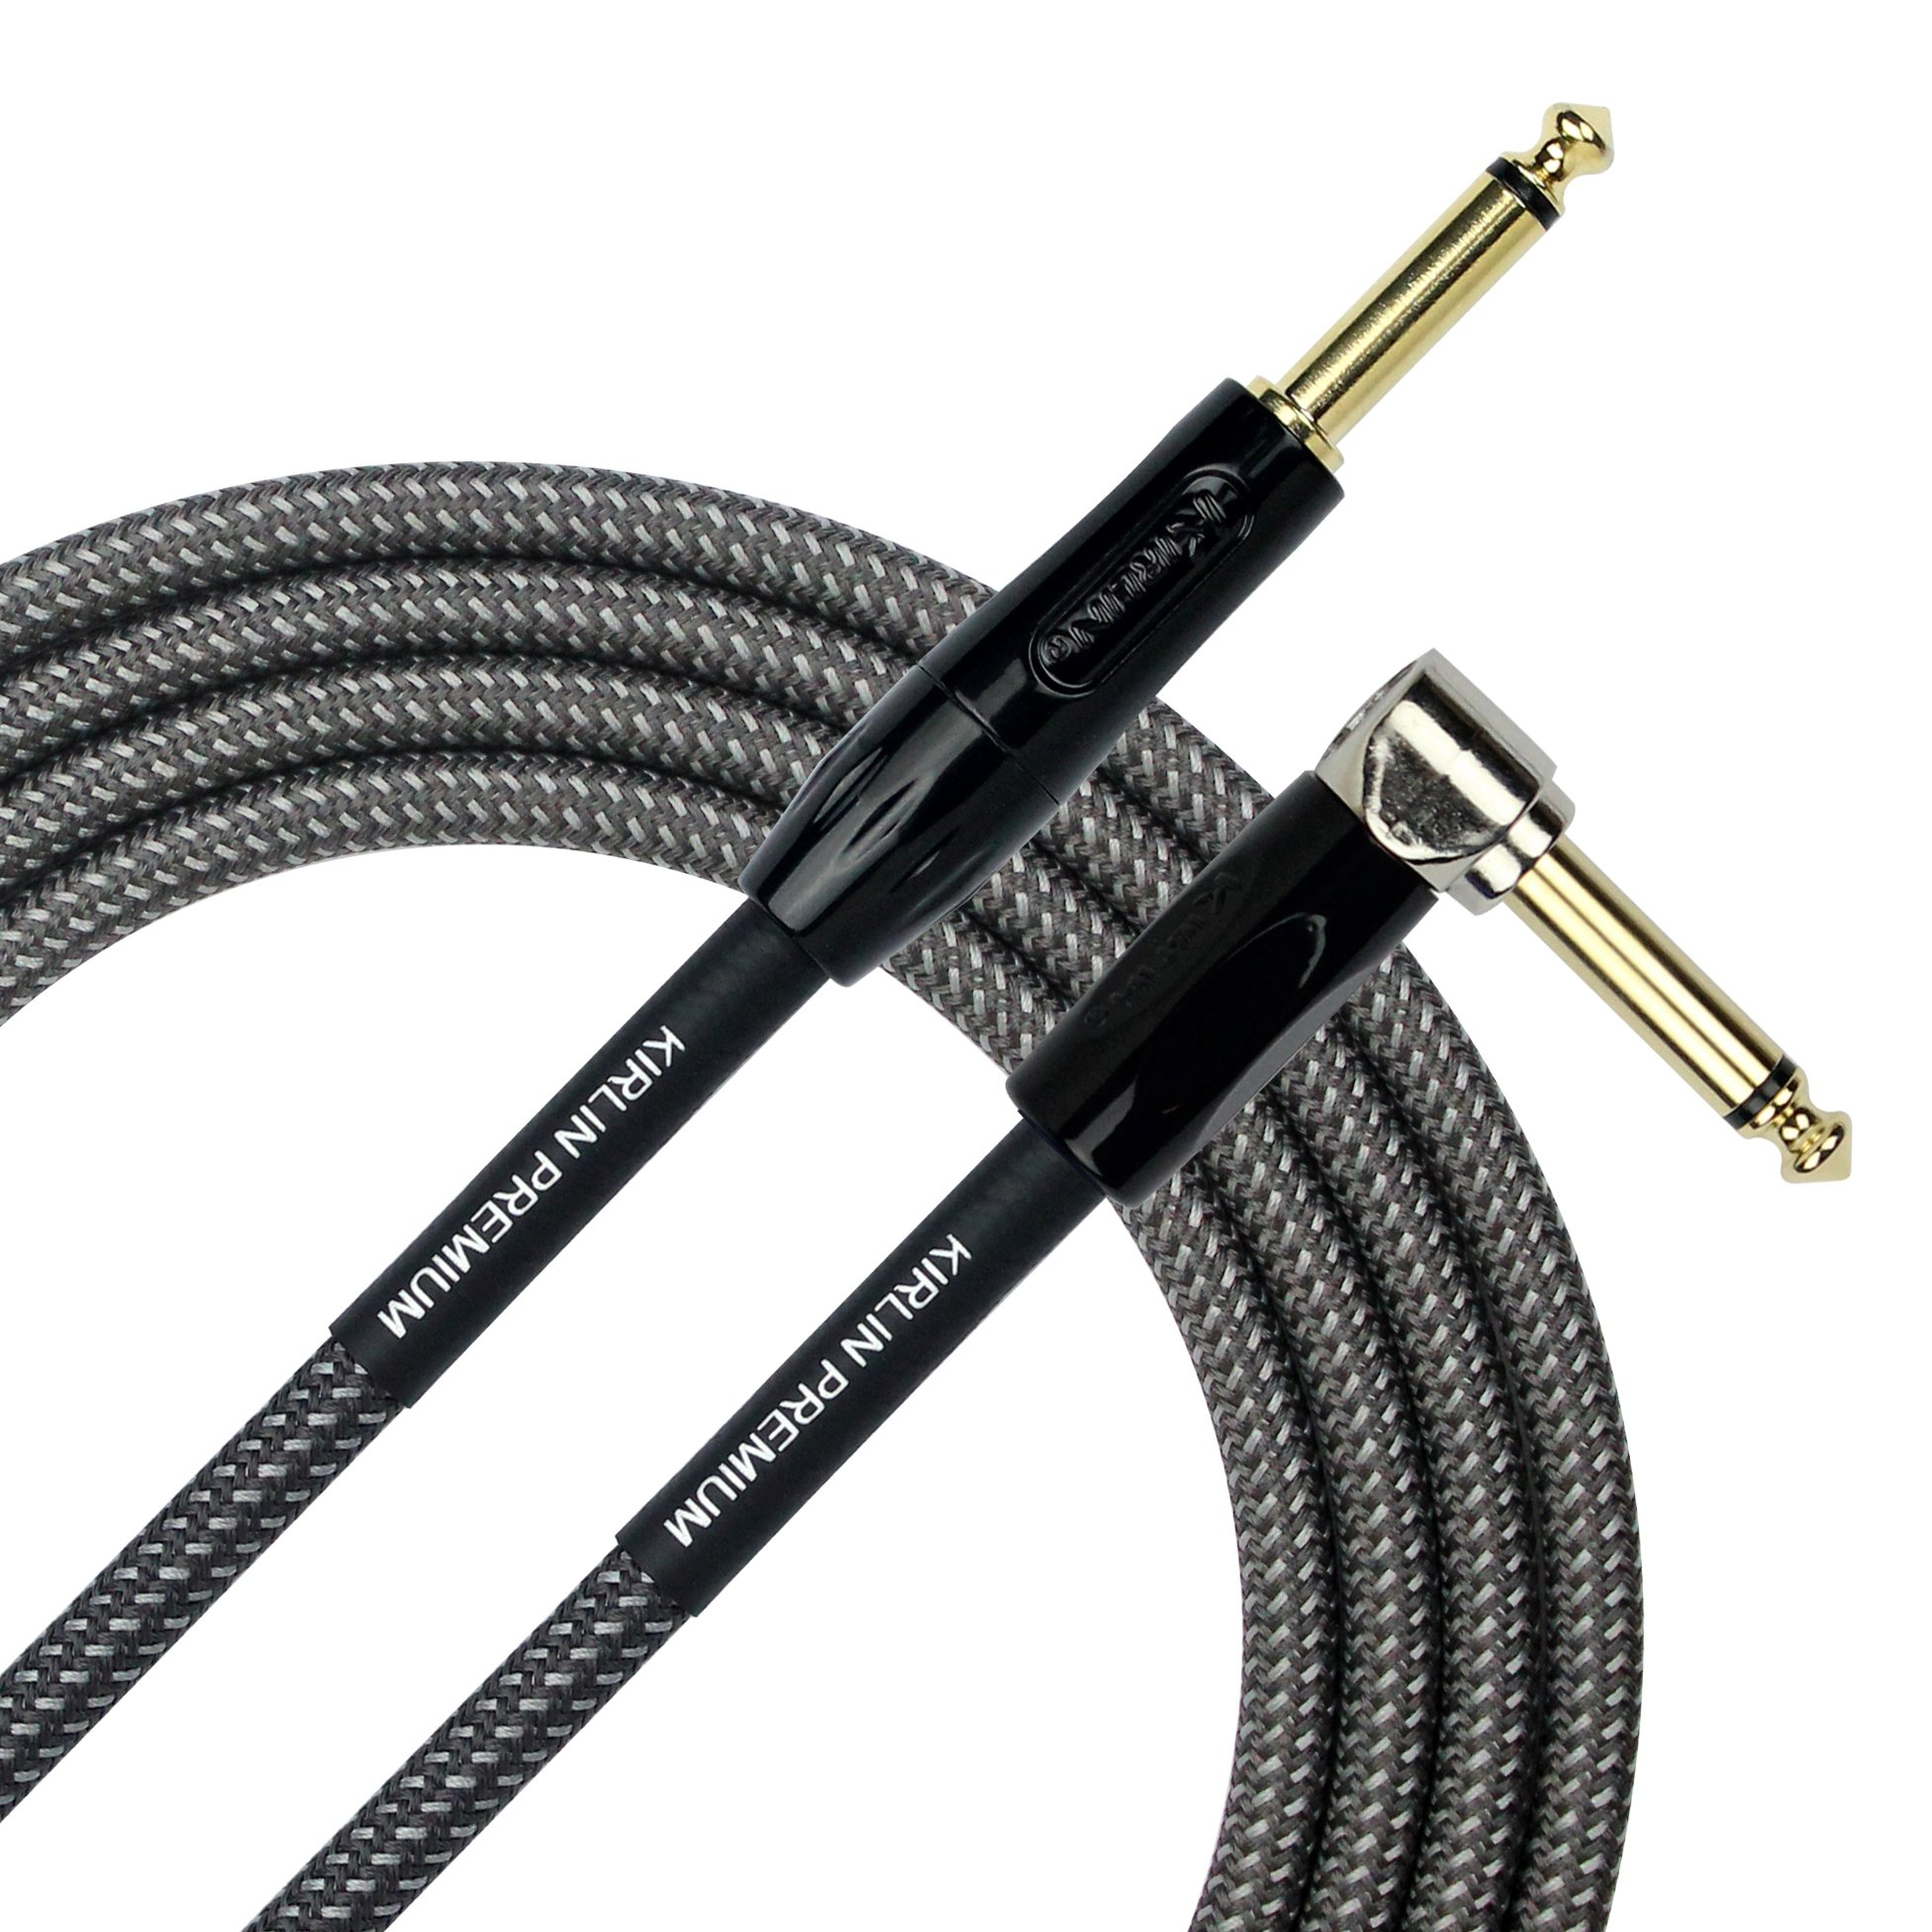 KIRLIN Cable IWB-202BFGL-10/CA 10-Feet Premium Plus Instrument Cable, Carbon Gray Woven Jacket by KIRLIN, KIRLIN CABLE